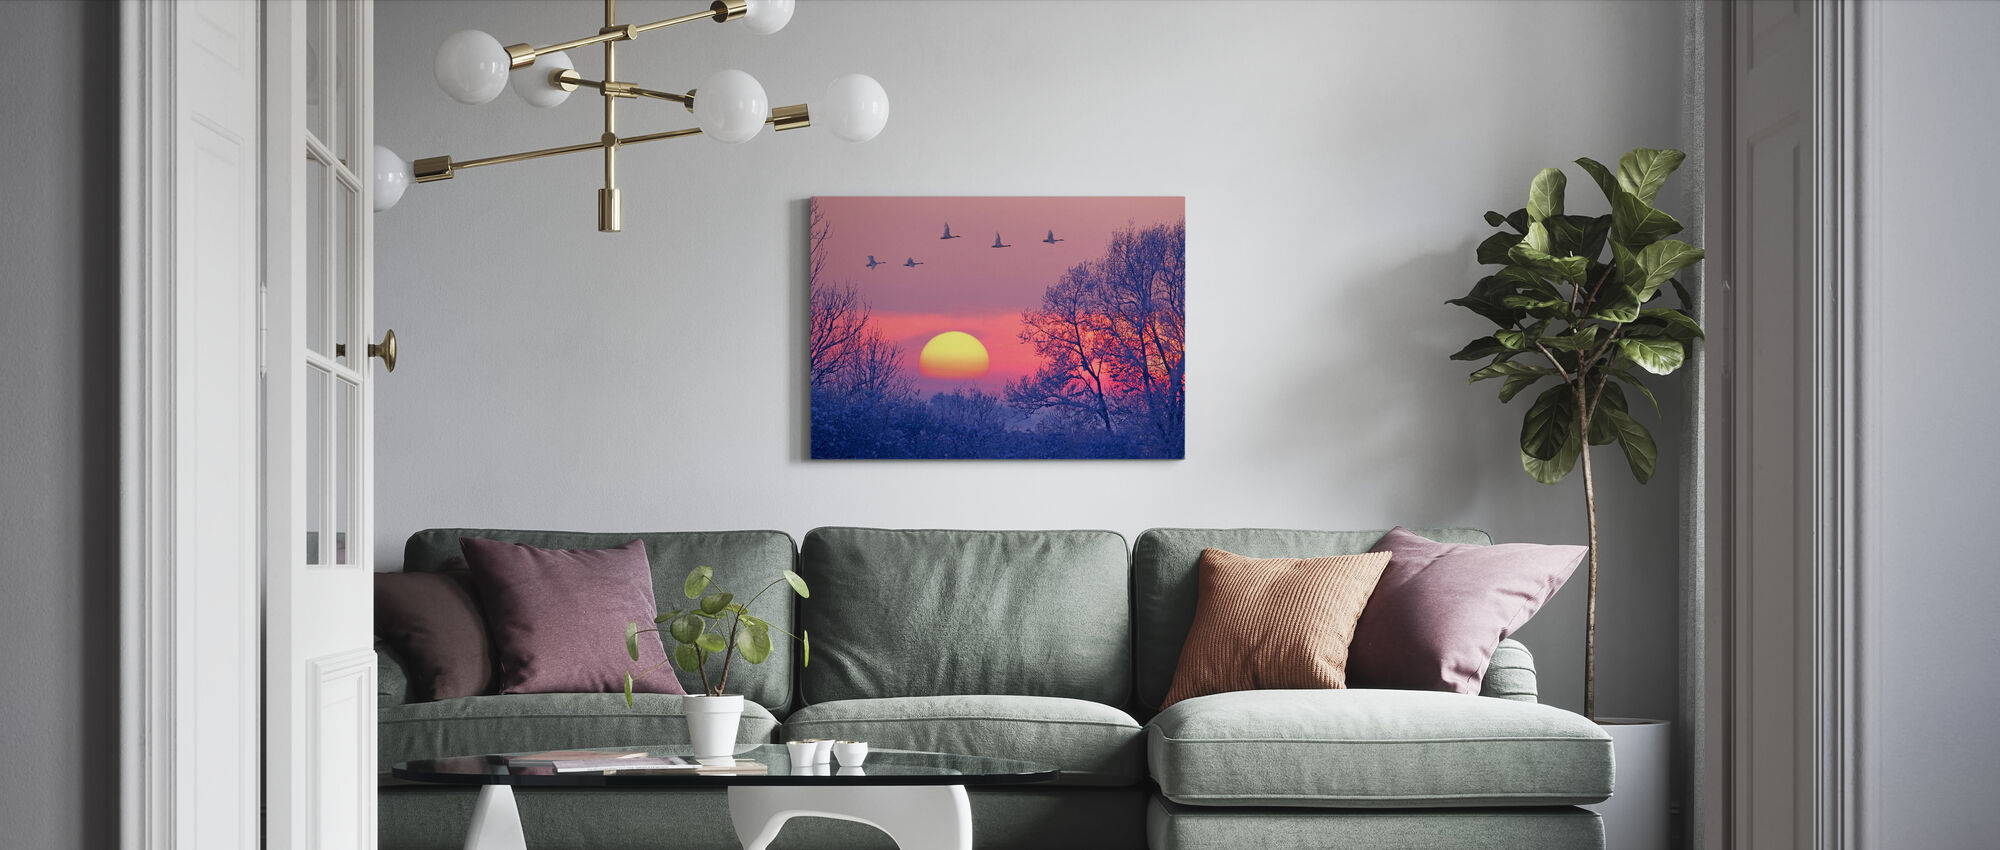 Whooper Swans at Dusk - Canvas print - Living Room